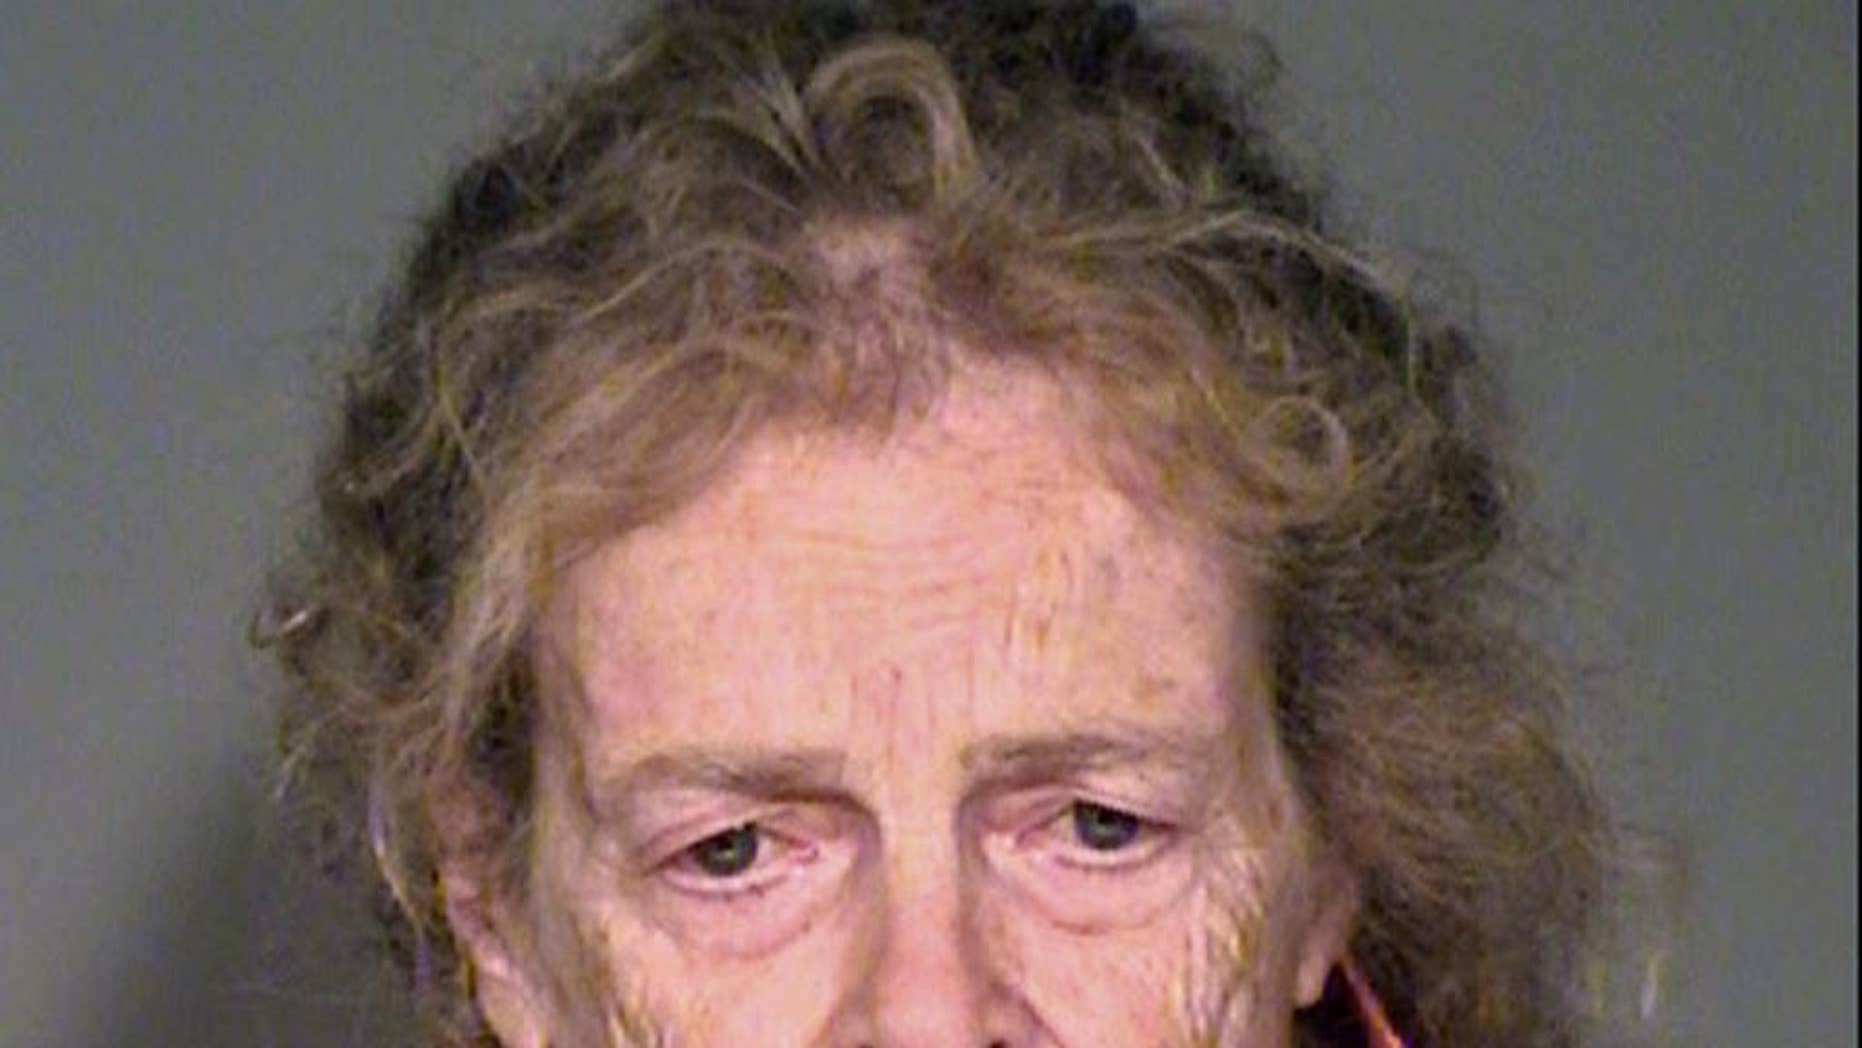 This Sunday, July 17, 2016, photo provided by the Simi Valley, Calif., Police Department shows Mary Karacas, 75. Karacas was arrested for investigation of murder after her 83-year-old boyfriend was found dead in their home Simi Valley home Sunday. The body of Salvatore Orefice was discovered in a bed Sunday by a man who had bought the house in Simi Valley from the couple in June, and stopped by to check their progress with moving out. (Simi Valley Police Department via AP)